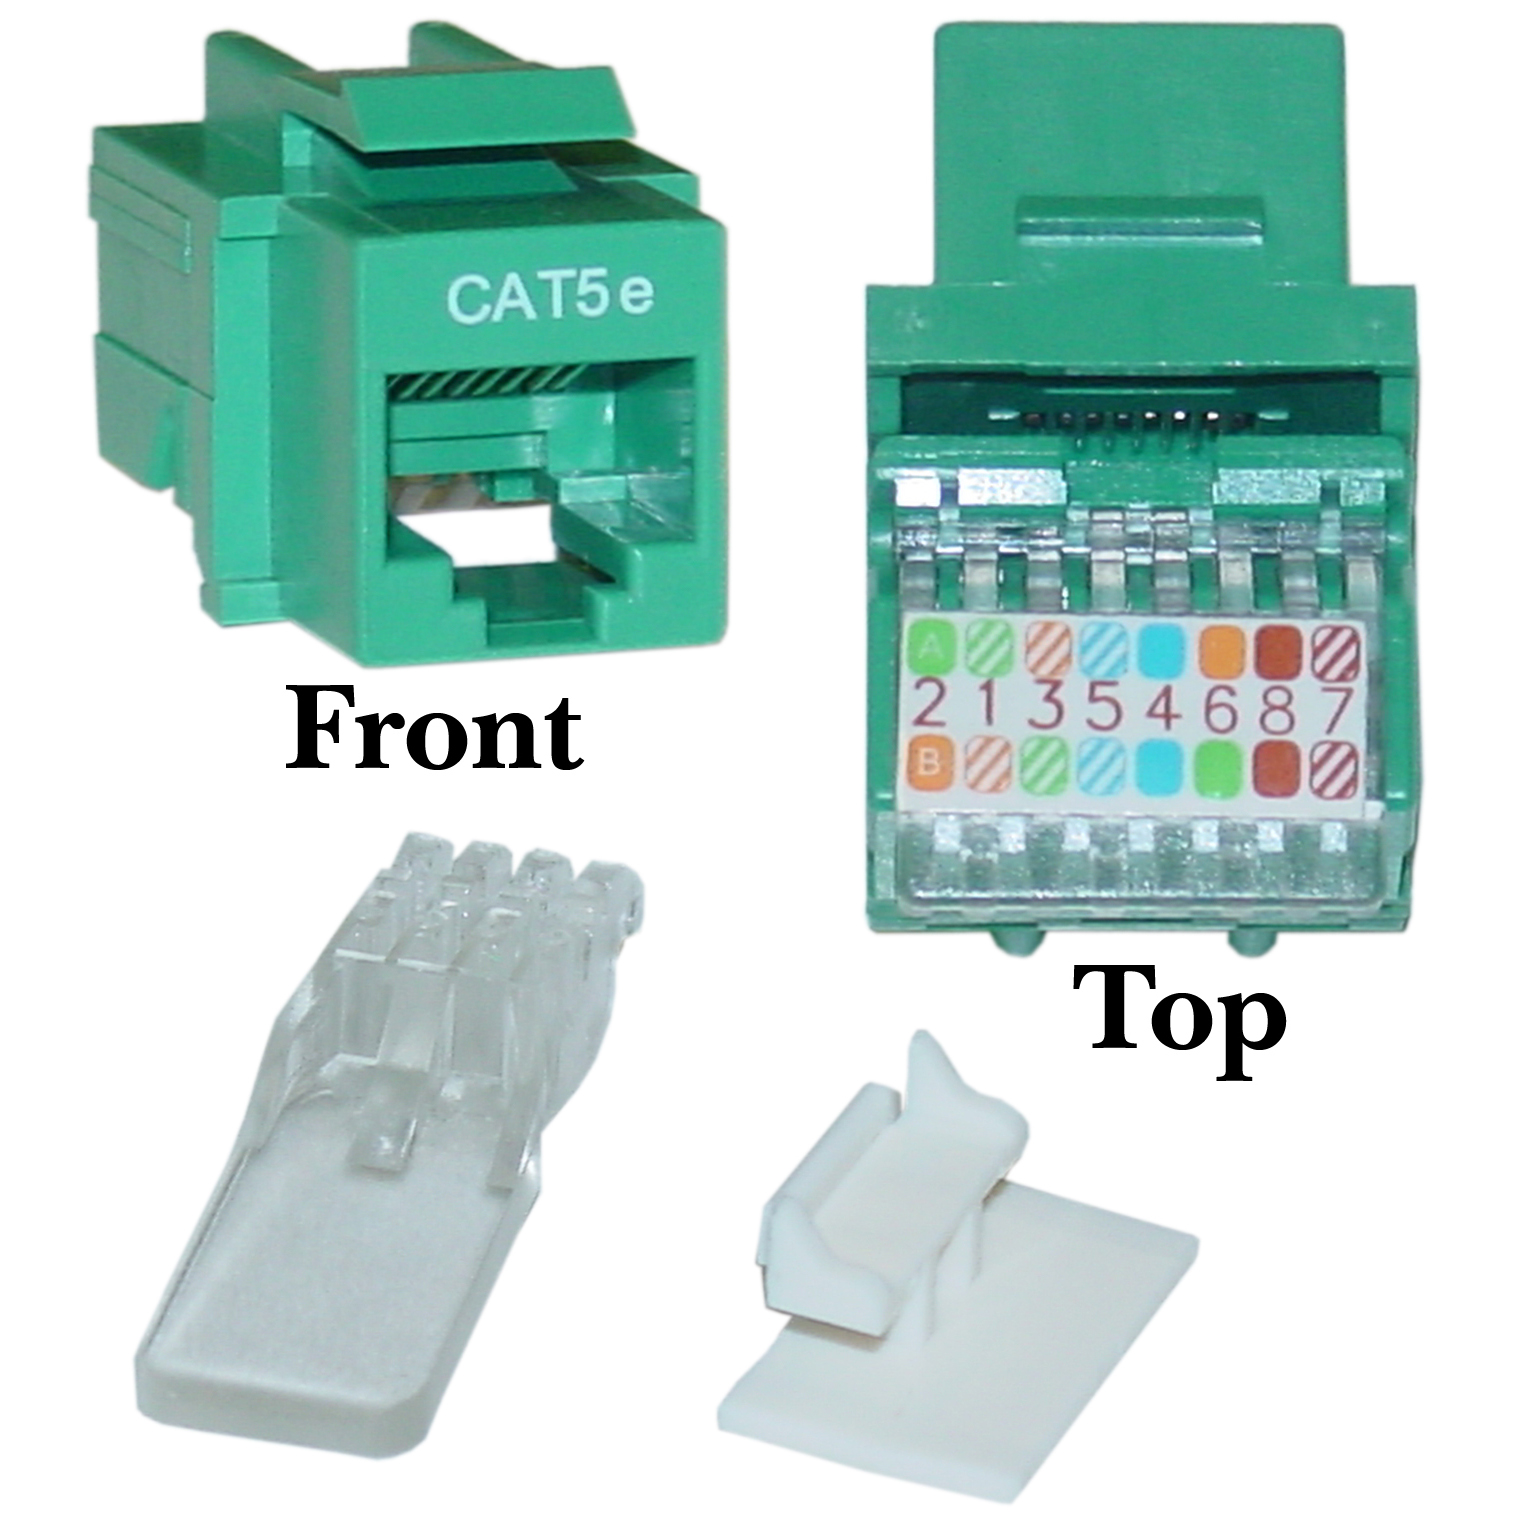 311 120gr green cat5e rj45 keystone jack toolless cablewholesale cat 5e jack diagram at eliteediting.co